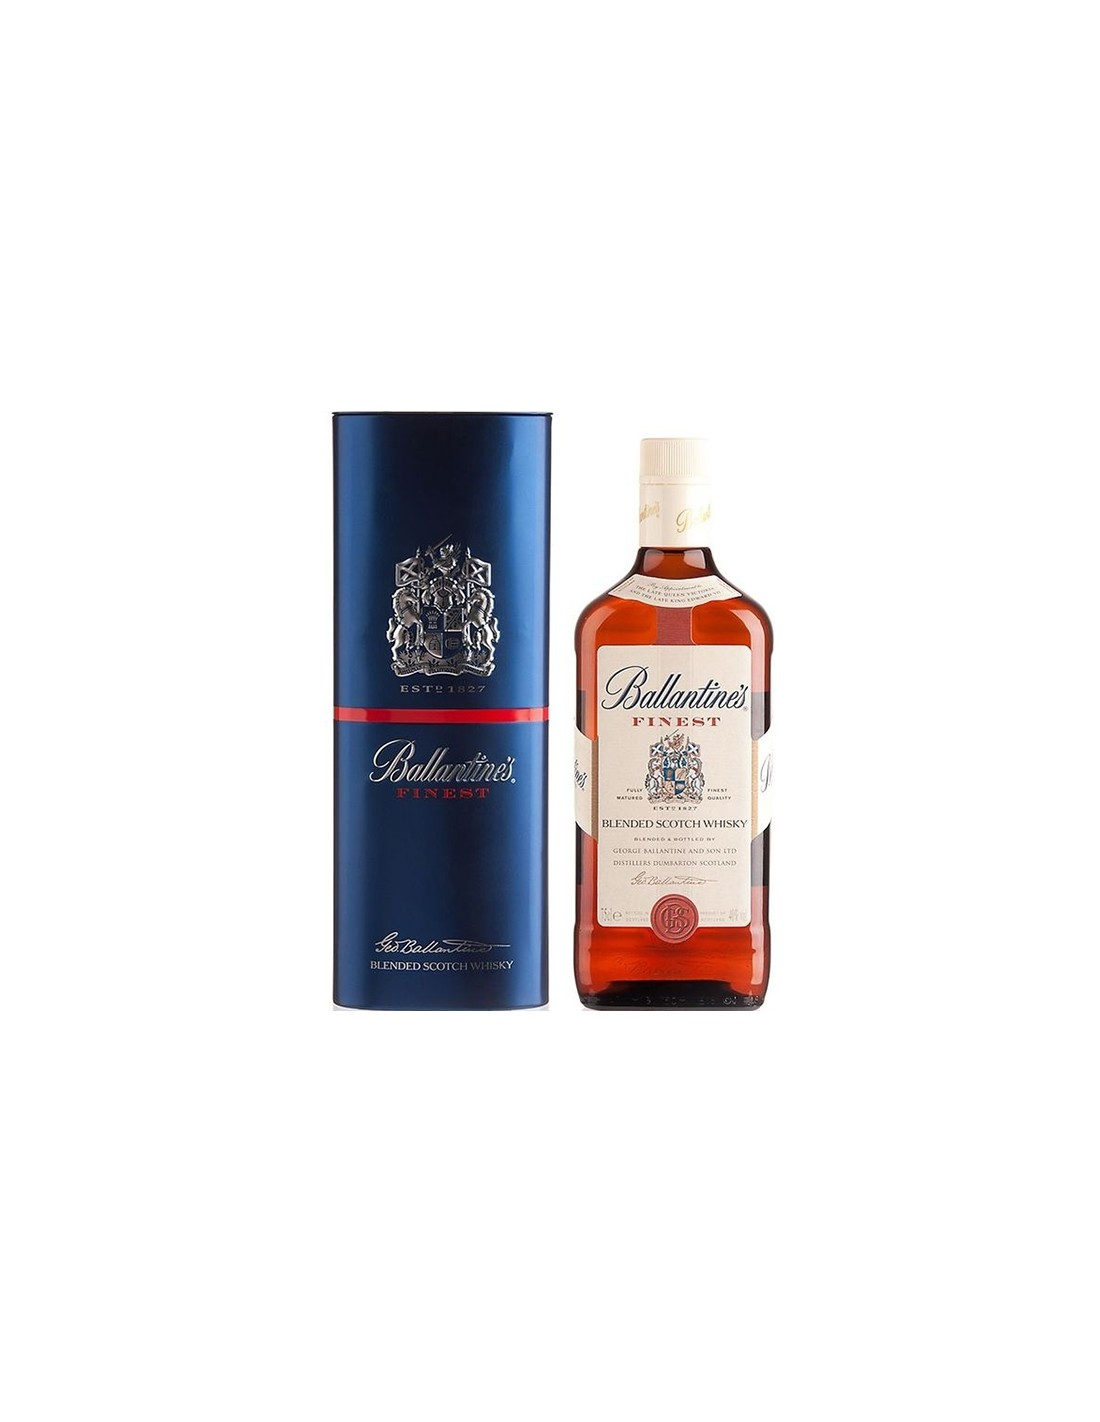 Whisky Ballantine's Finest, 40% alc., 0.7L, Scotia